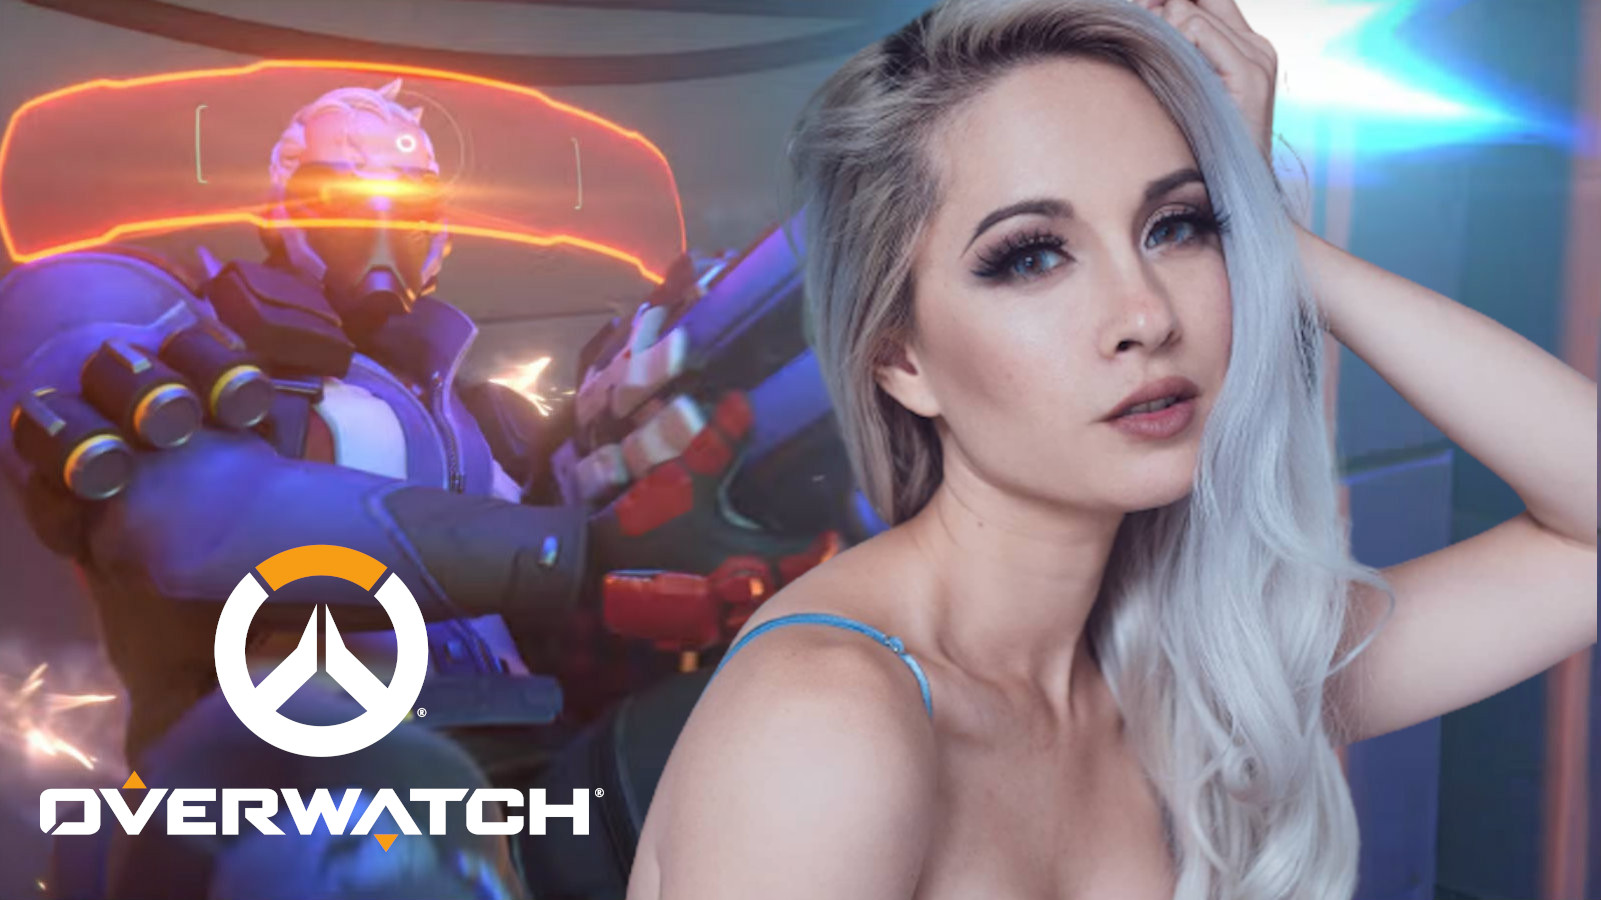 Female Soldier 76 cosplay from Overwatch